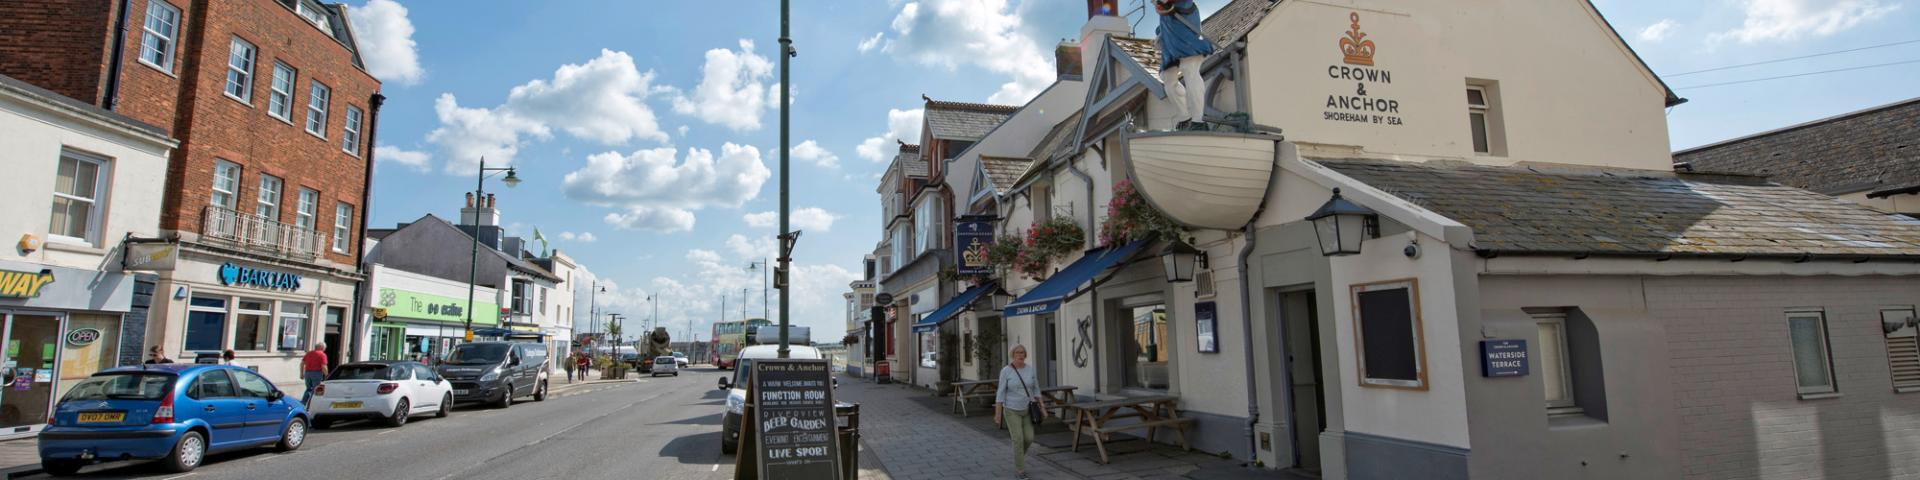 Private Functions at the Crown And Anchor Shoreham